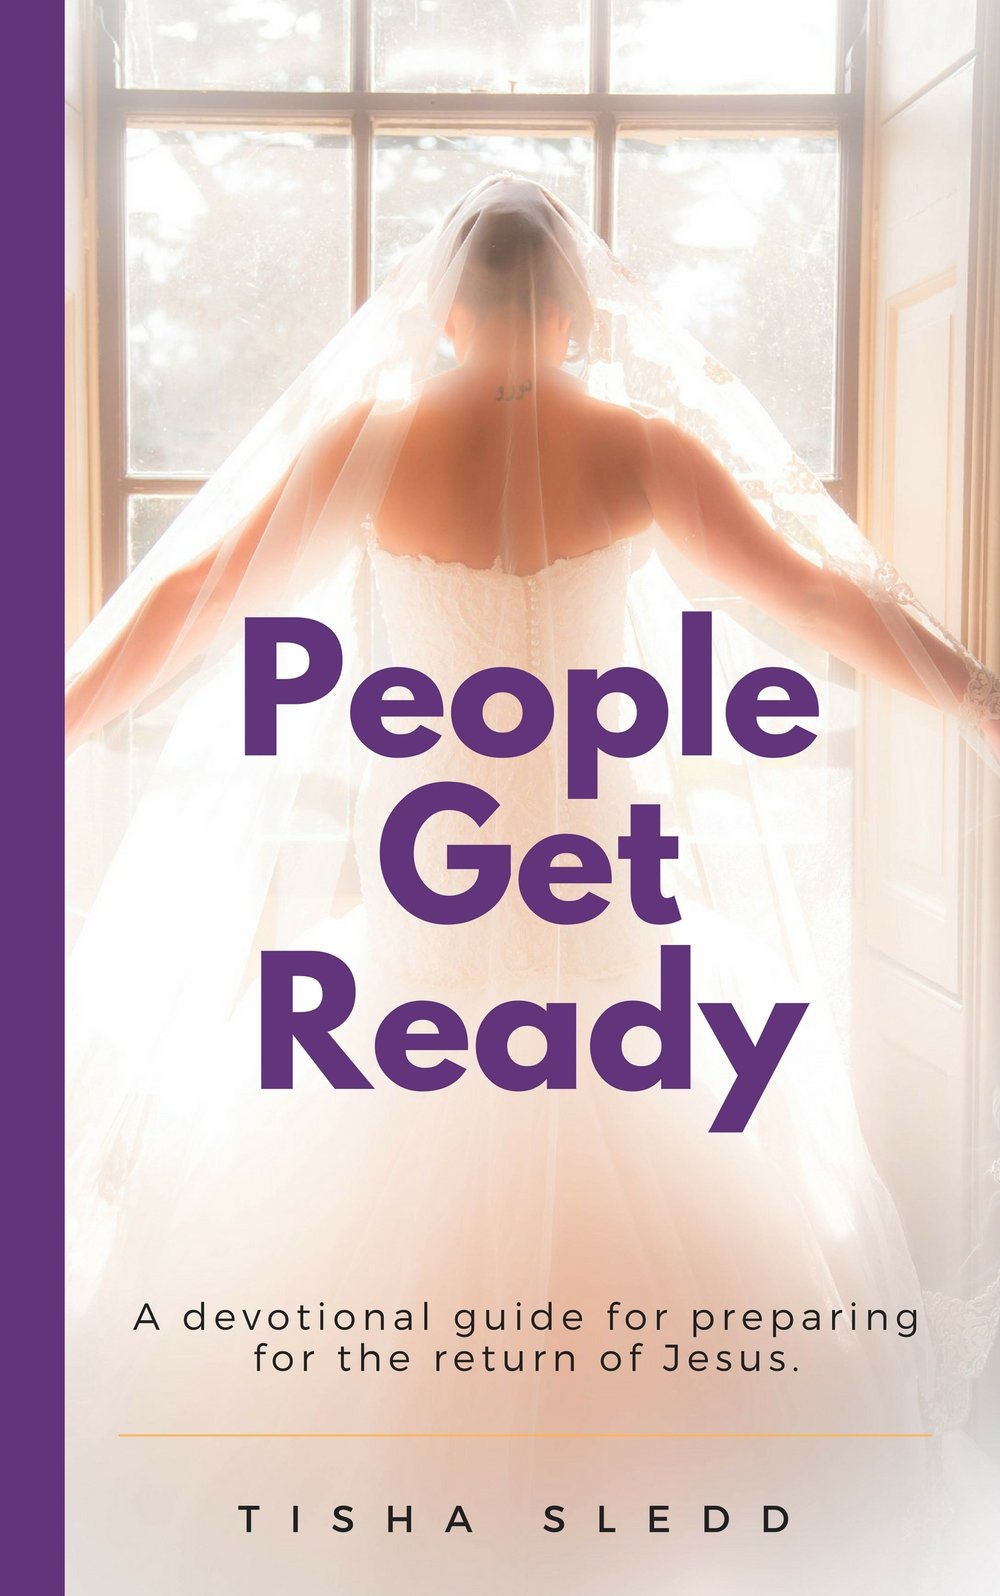 Free Devotional Download - Jesus is coming back for a Bride who is READY for Him. It is important that we are using this time to prepare ourselves for a WEDDING!This book will jumpstart your preparation for His return. Simply enter your email below and a .pdf of Tisha's book